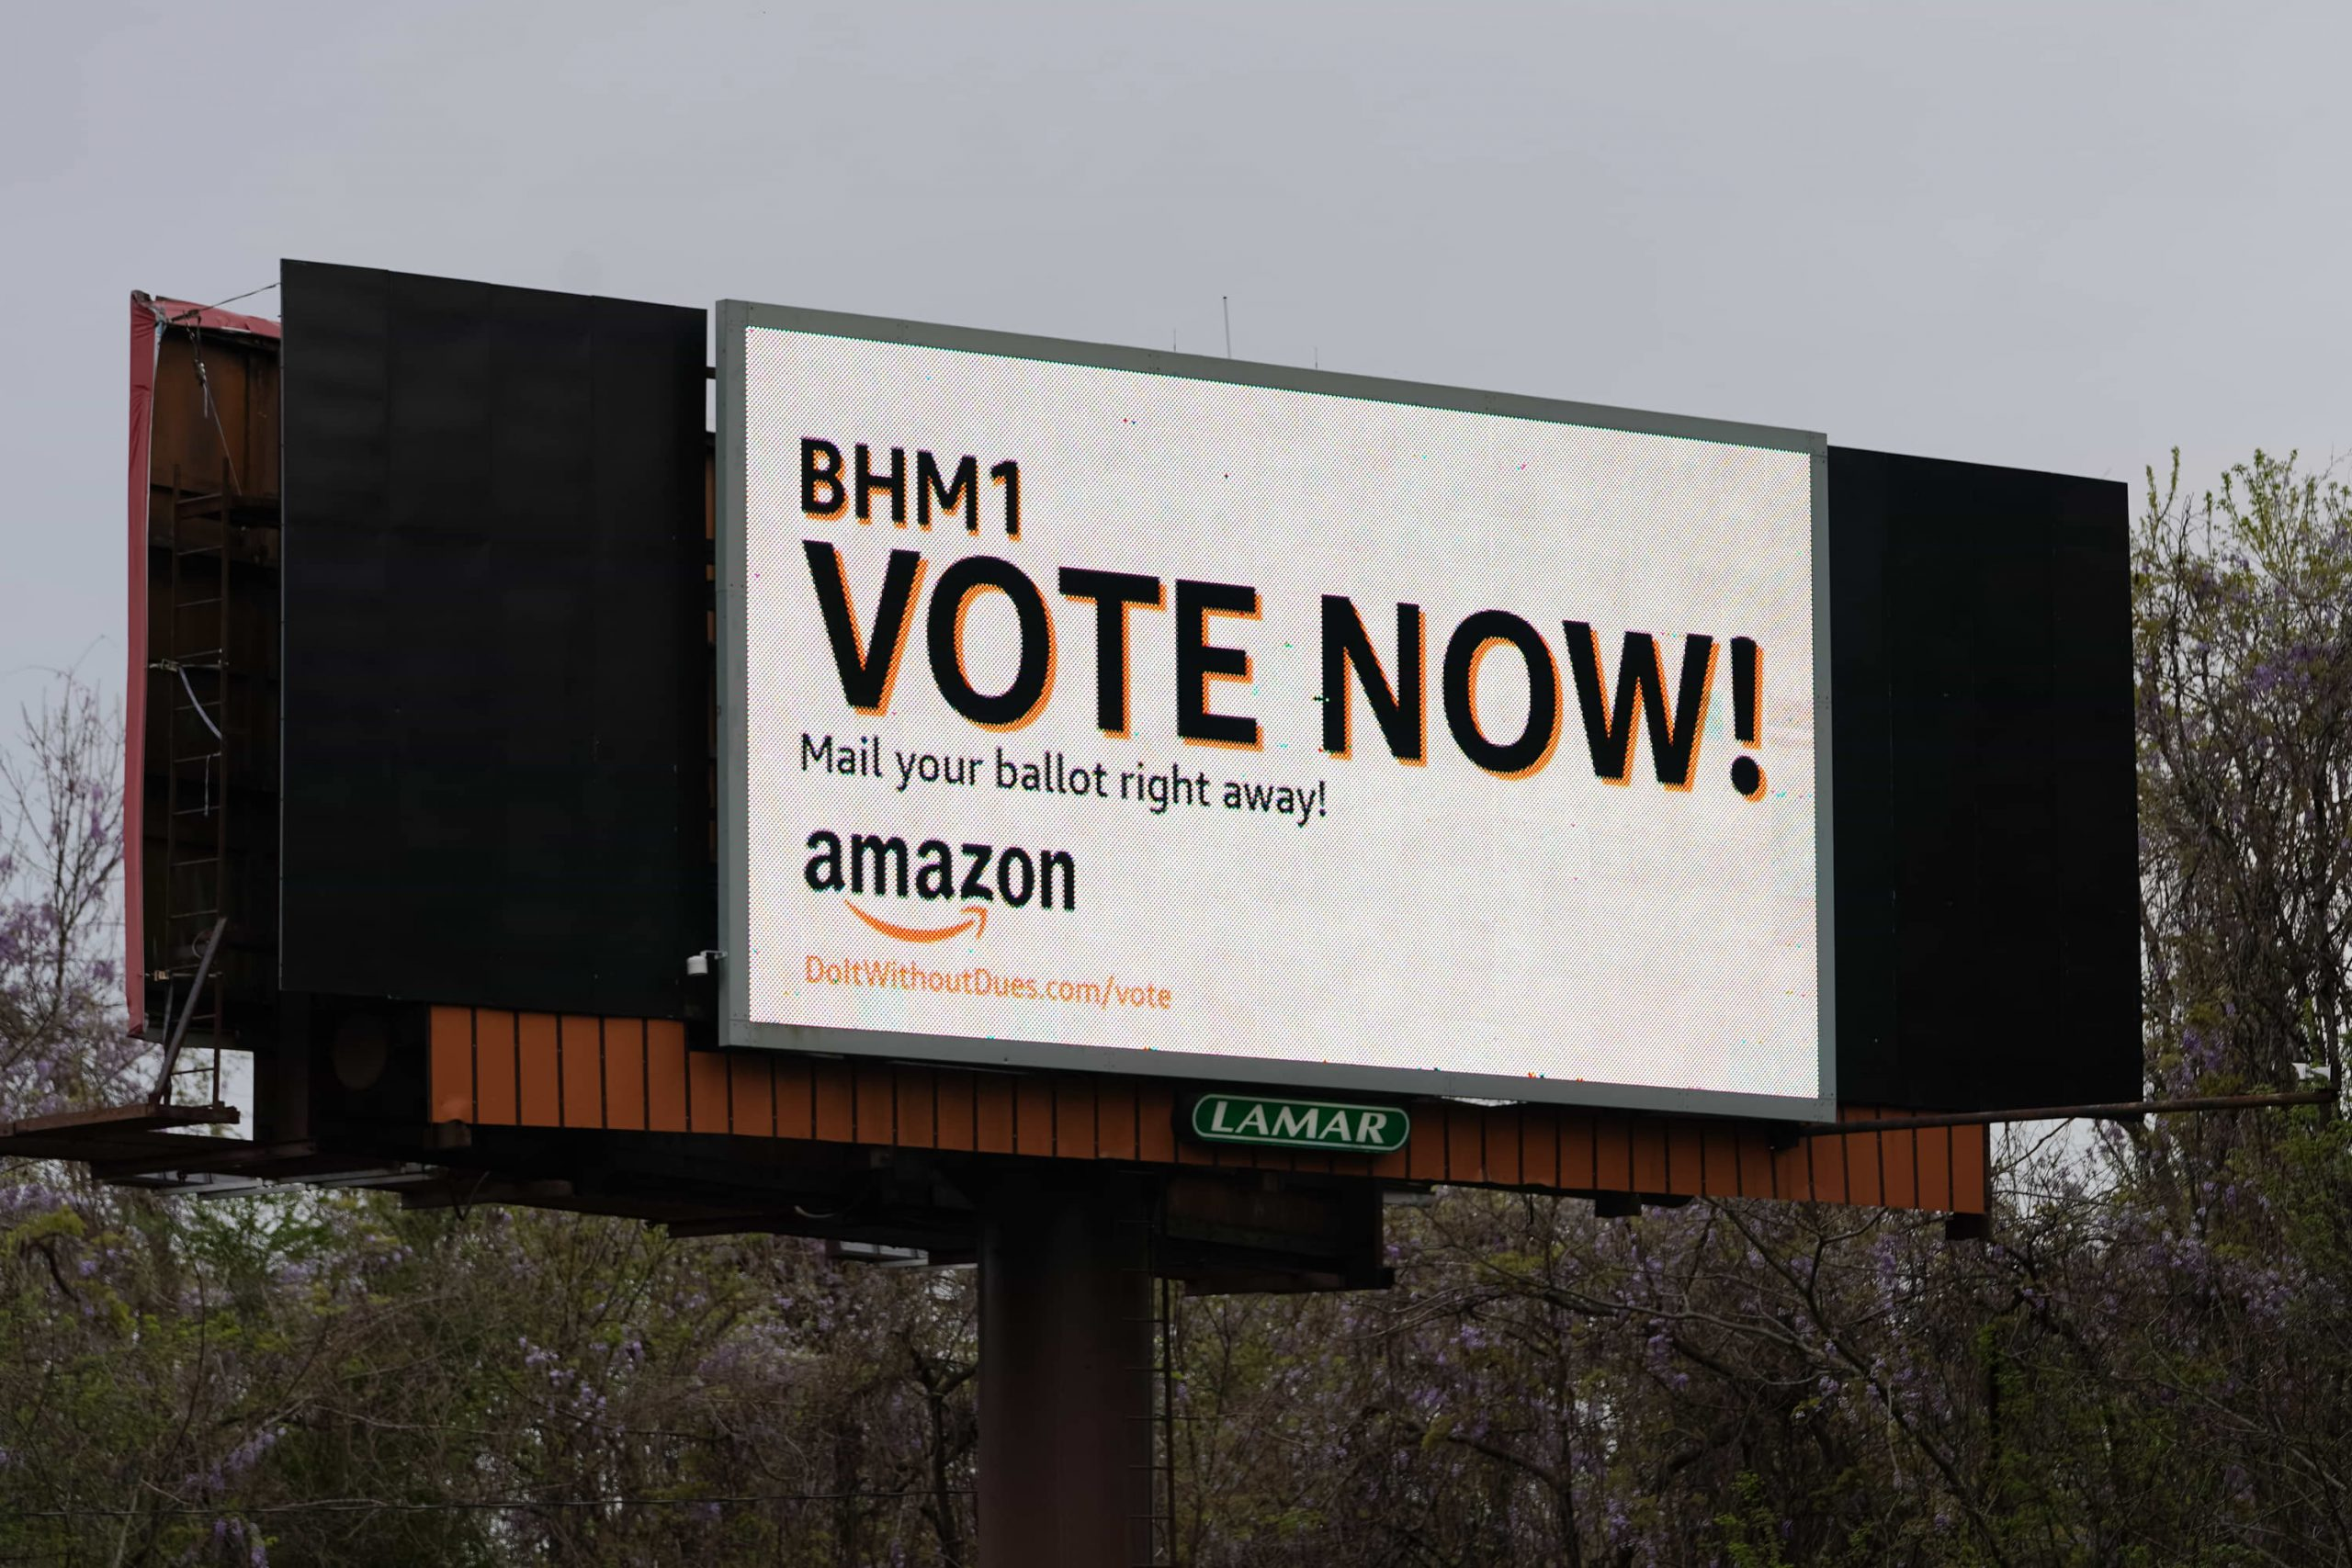 Amazon's PR campaign ahead of union vote shows how worried it is